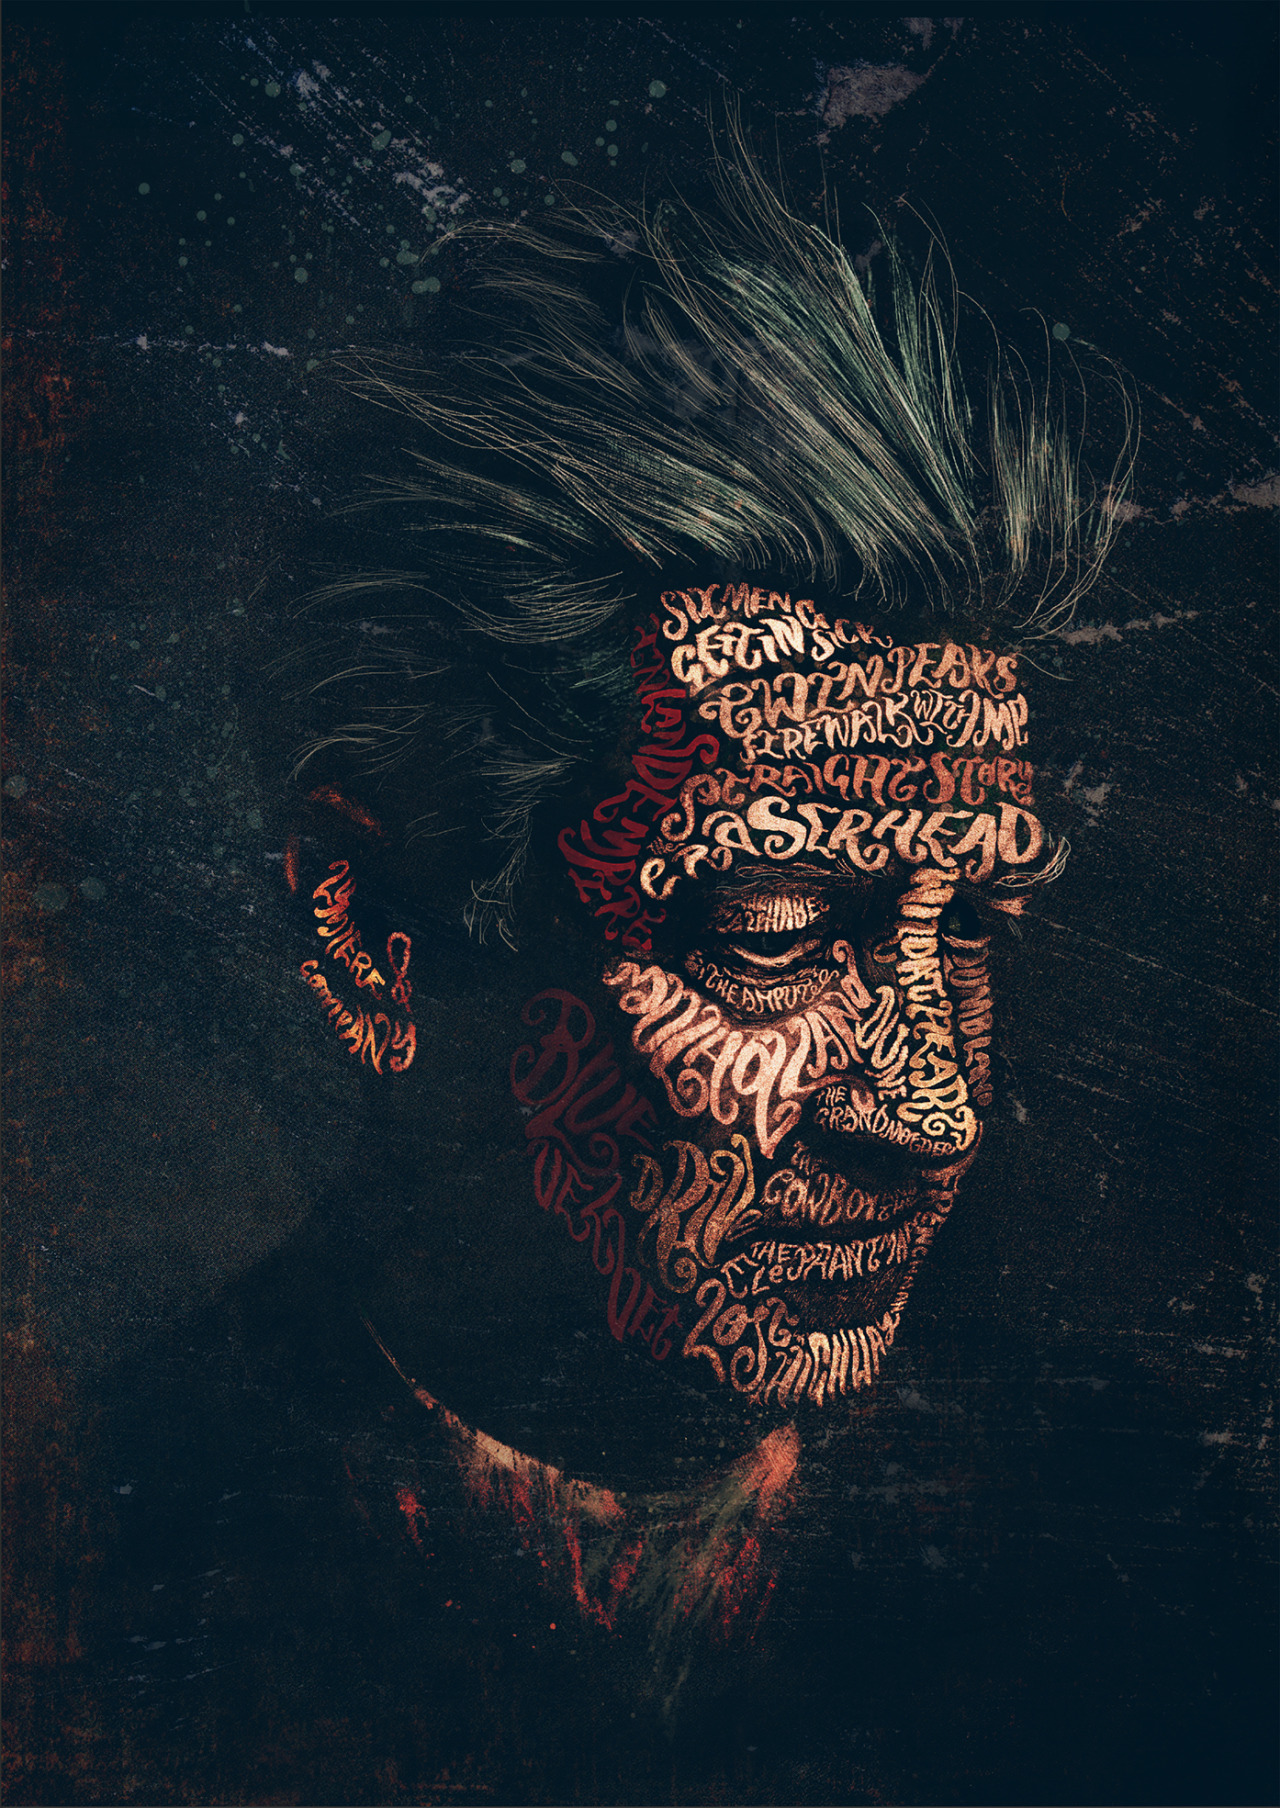 Cool art david lynch by peter strain live for films Typography portrait